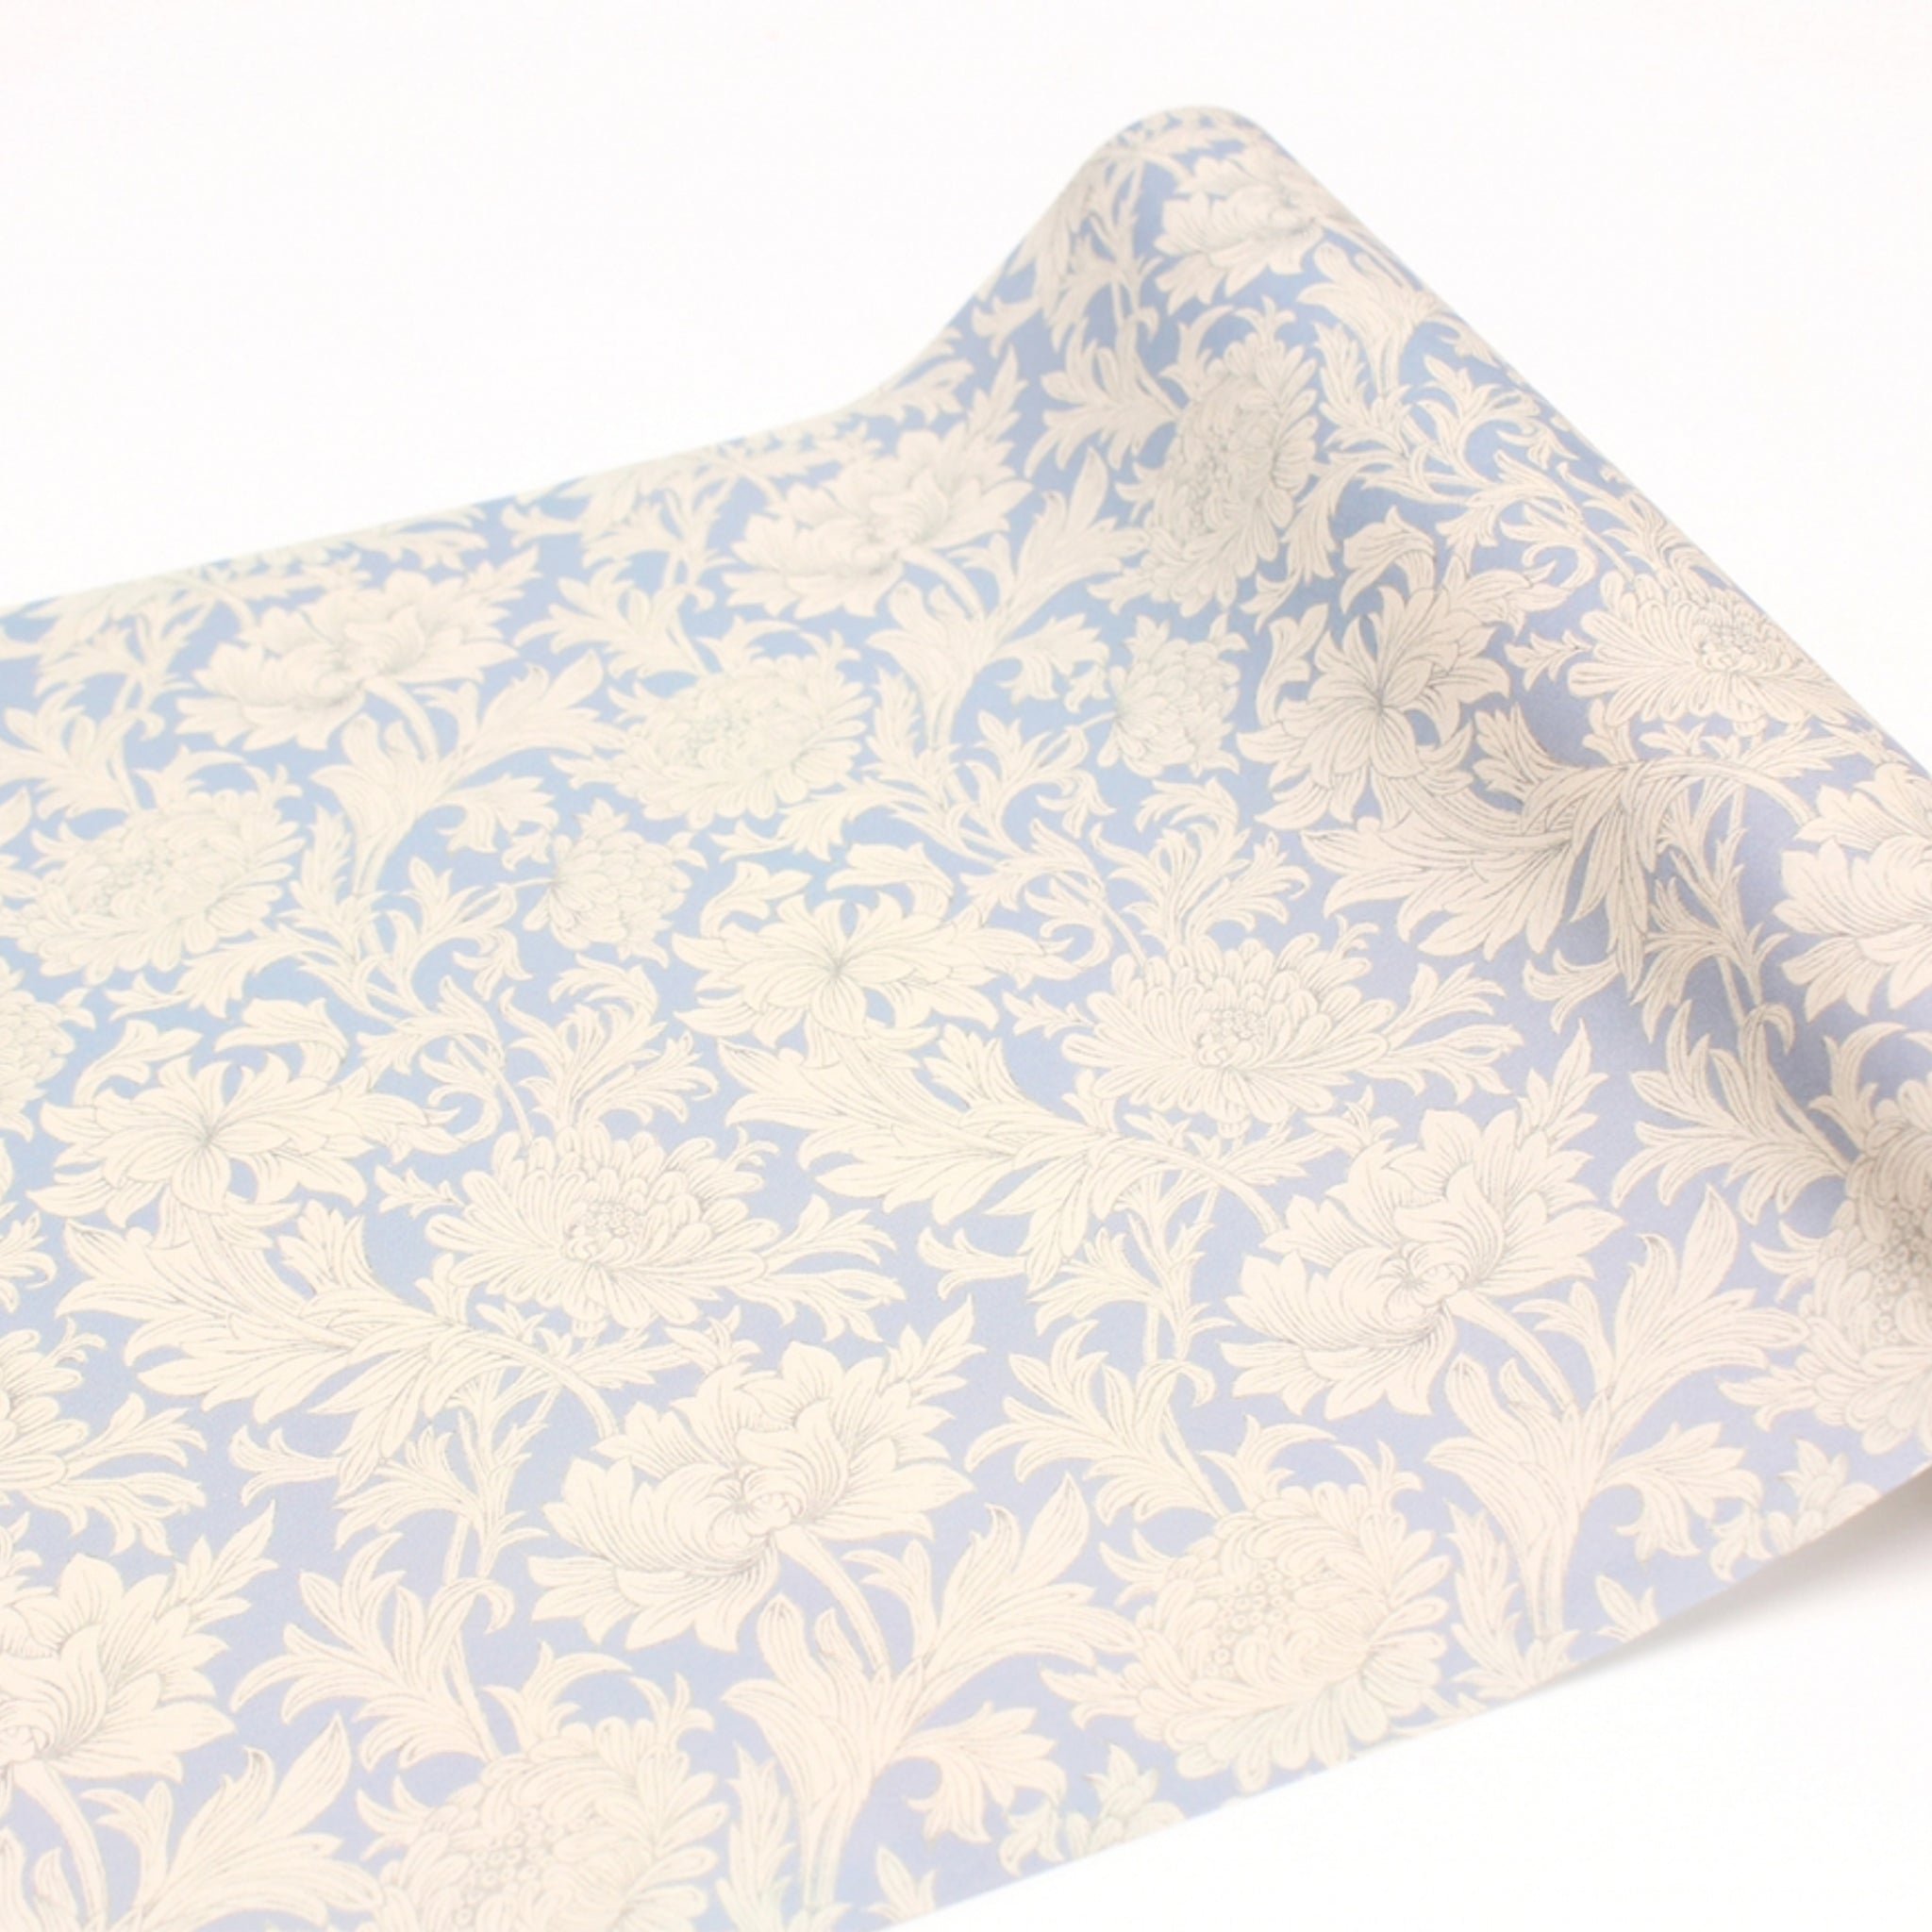 MT Wrap William Morris Chrysanthemum Toile